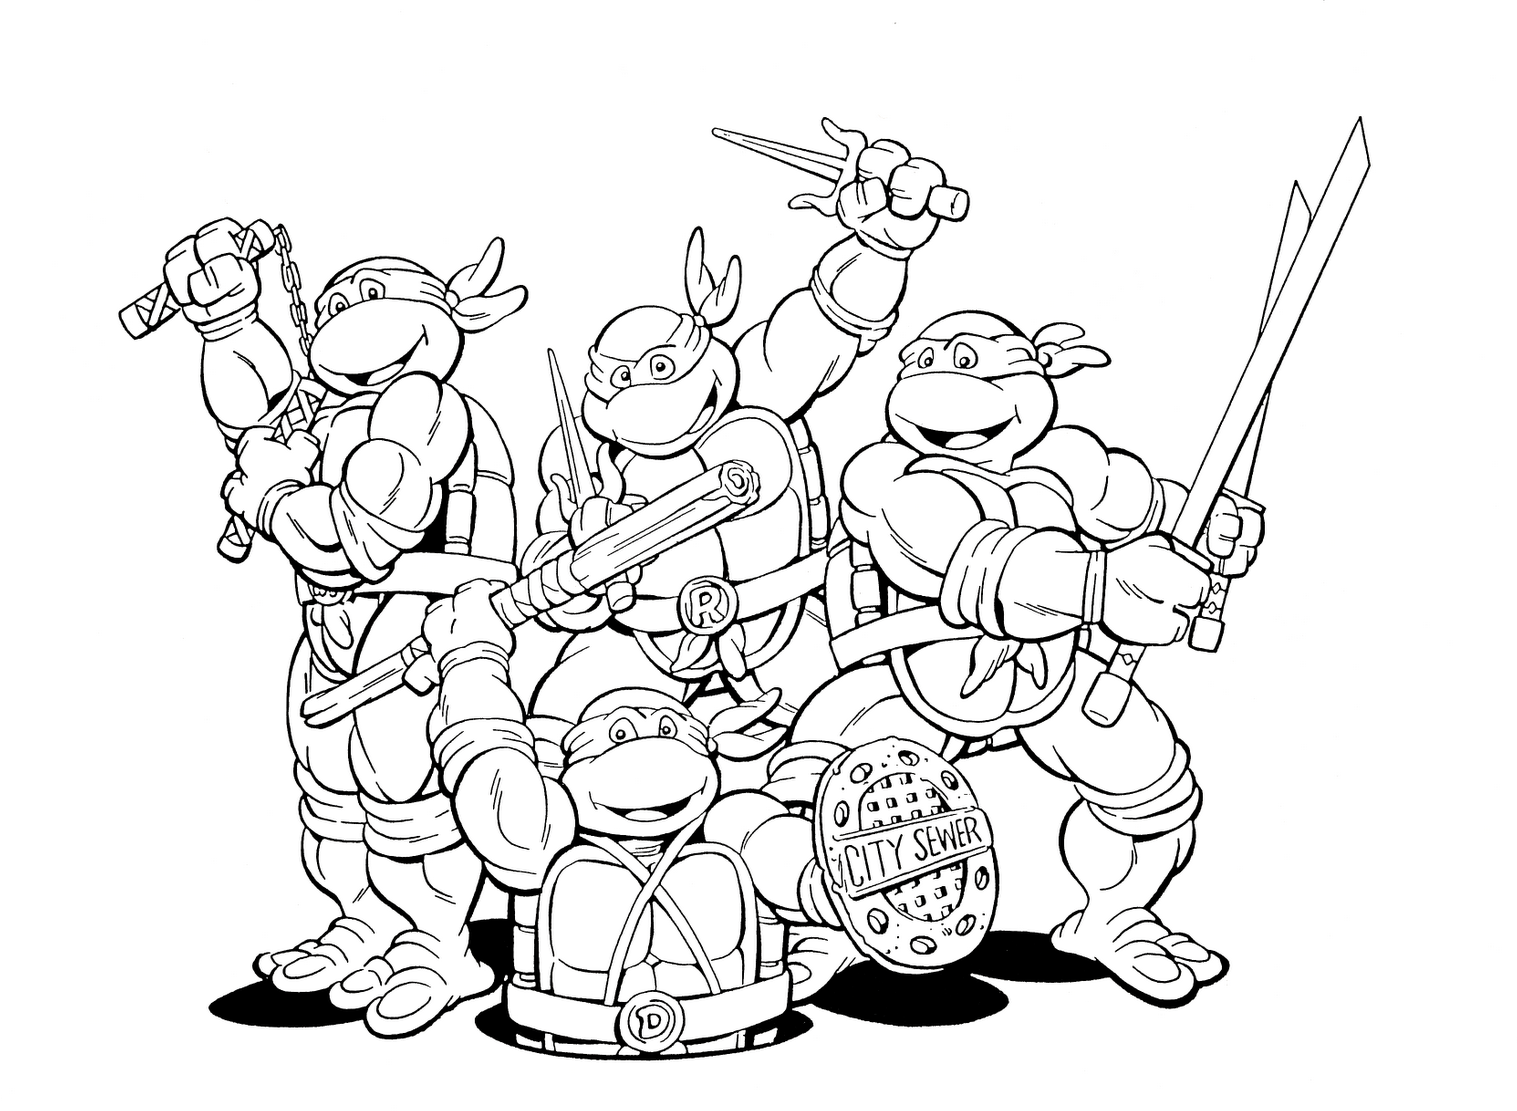 Nickelodeon Ninja Turtles Coloring Pages | Desenhos para pintar das ...